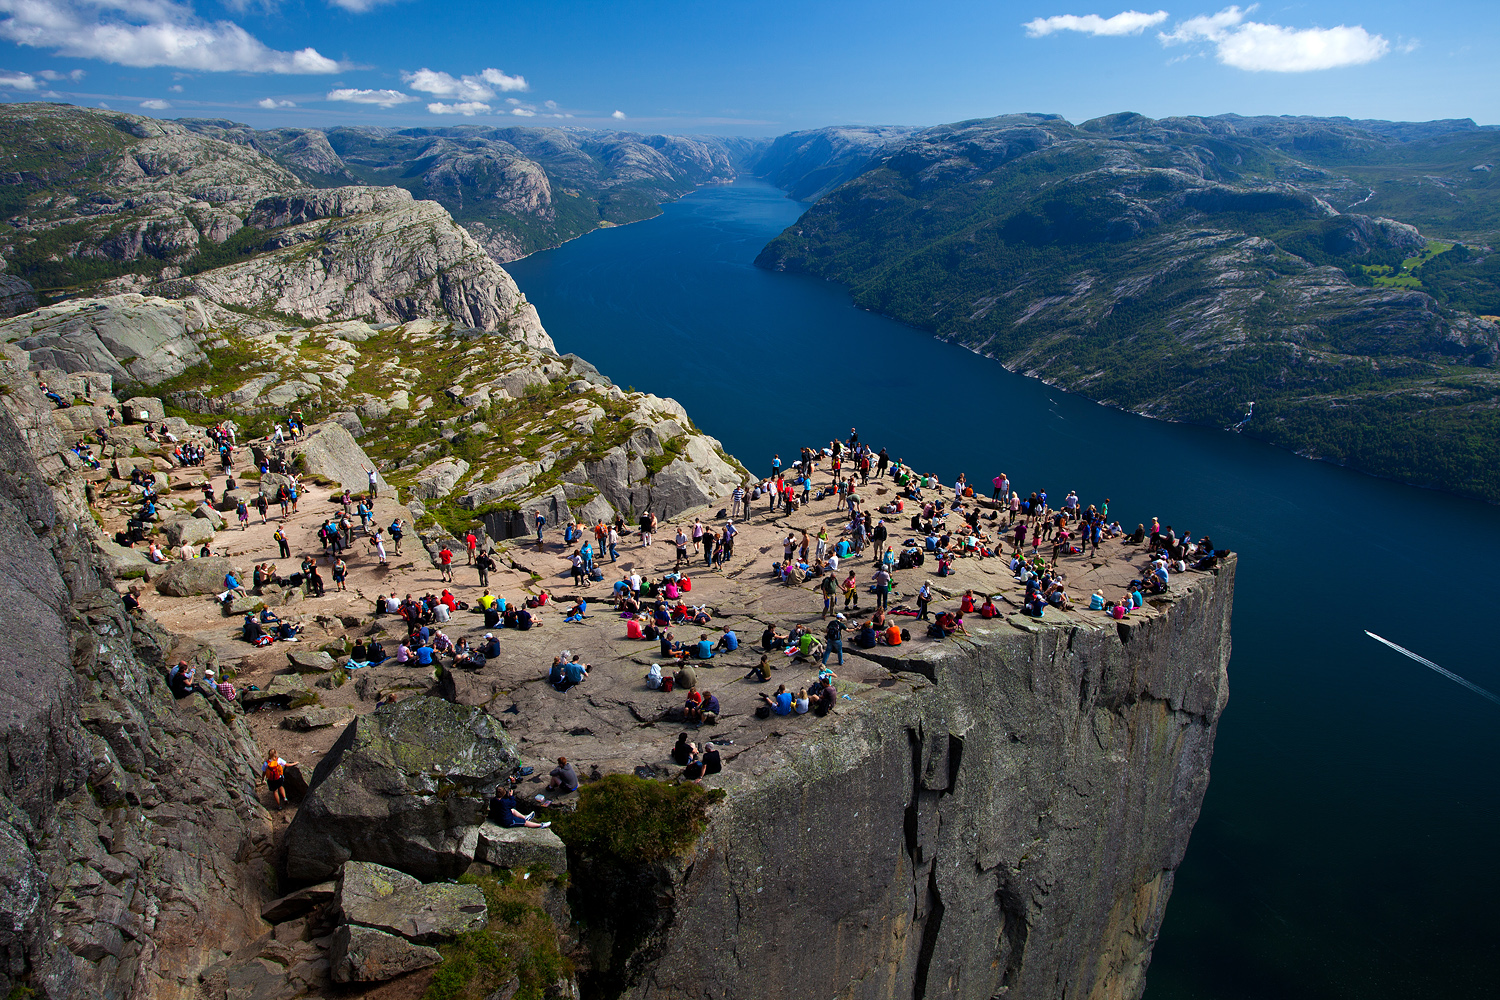 Preikestolen (Pulpit Rock) - Must Visit The Flat Mountain Top In Stavanger Region